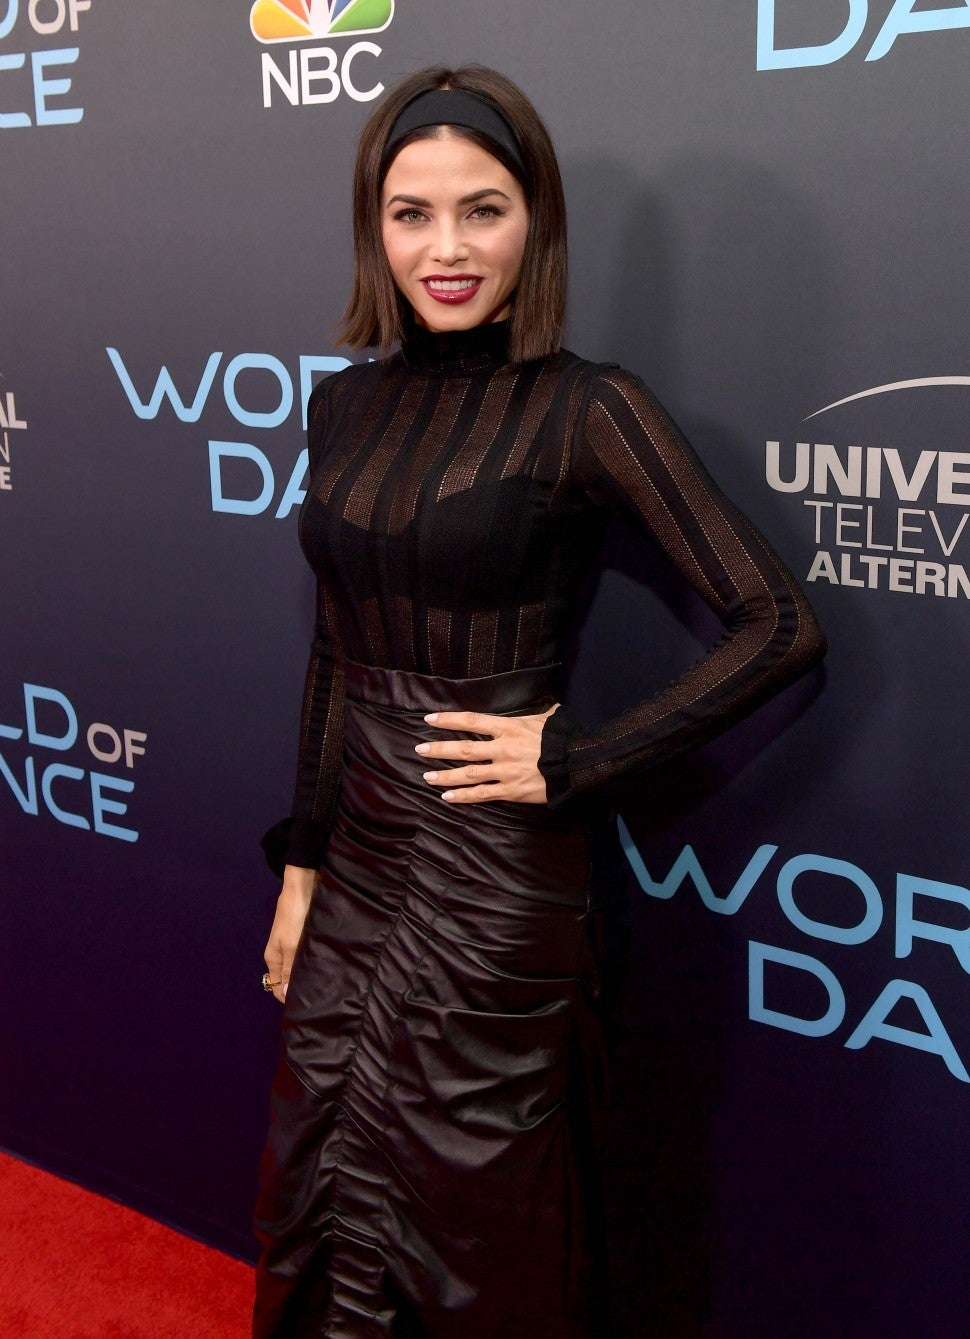 Jenna Dewan at World of Dance FYC Event in Hollywood on May 1